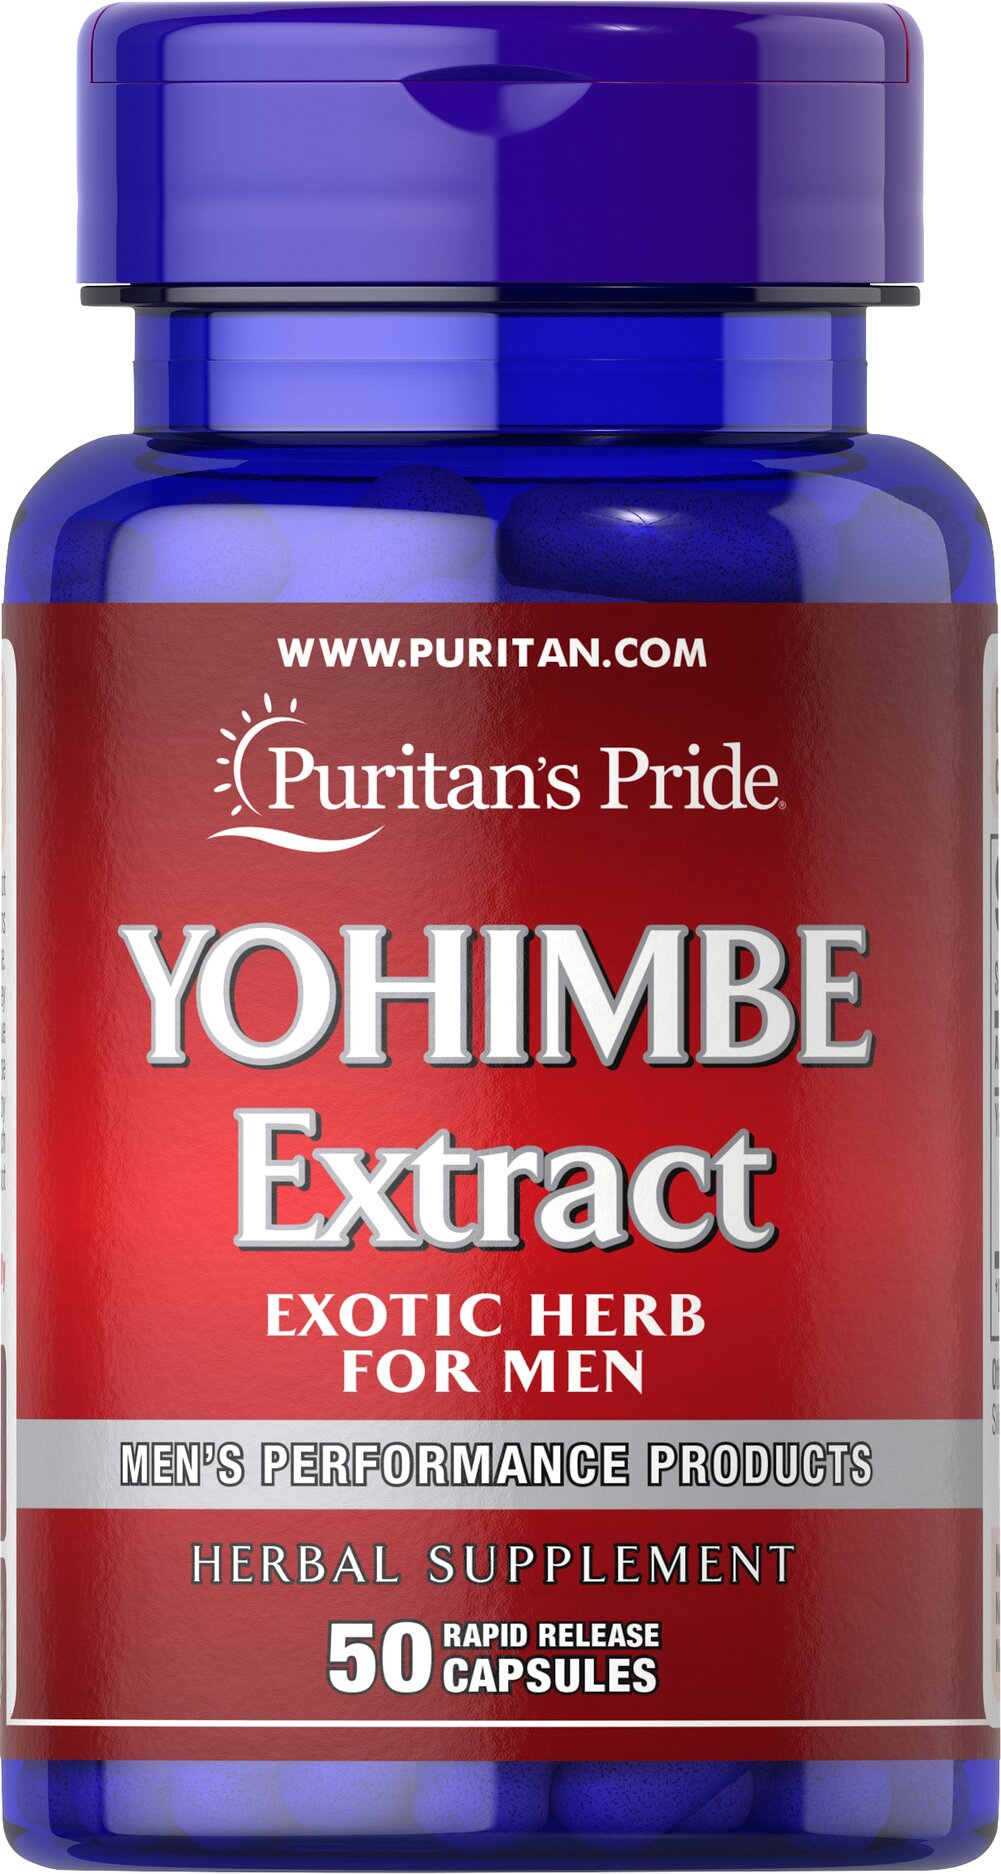 Yohimbe 2000 mg <p>2000 mg 4:1 Extract</p><p>We are proud to bring you Yohimbe 2,000 mg. Look to Puritan's Pride for high quality products and great nutrition at the best possible prices.</p> 50 Capsules 2000 mg $12.99